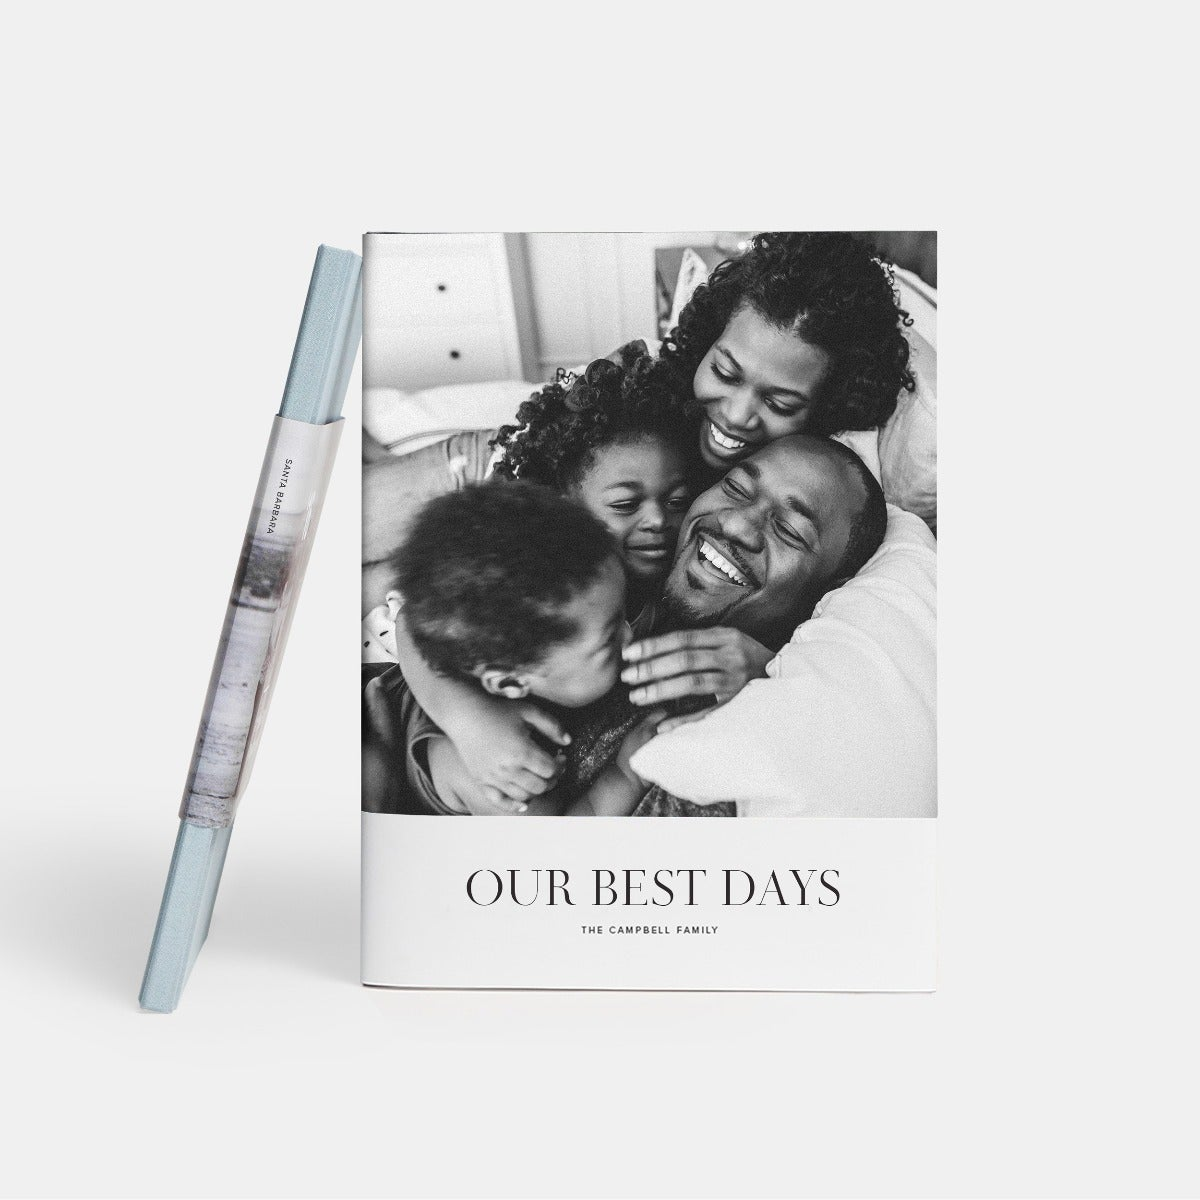 10 best gifts for grandparents from small businesses: A keepsake family photo album from Artifact Uprising